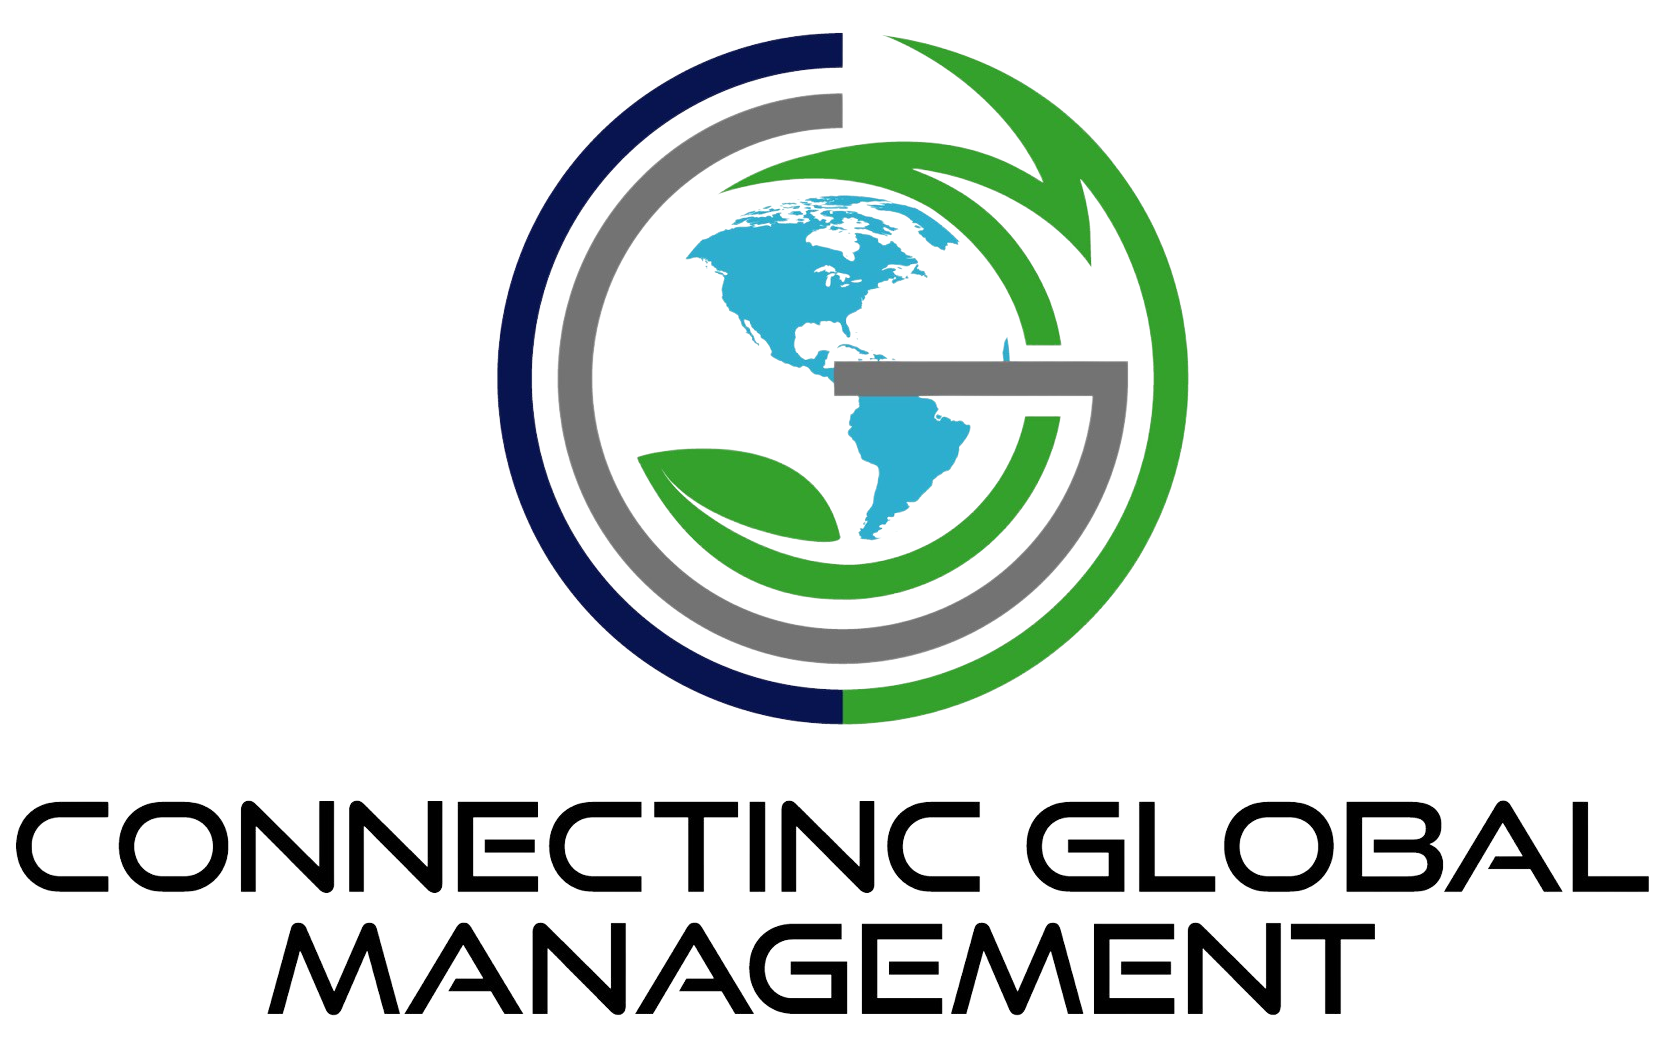 Connectinc Global Management